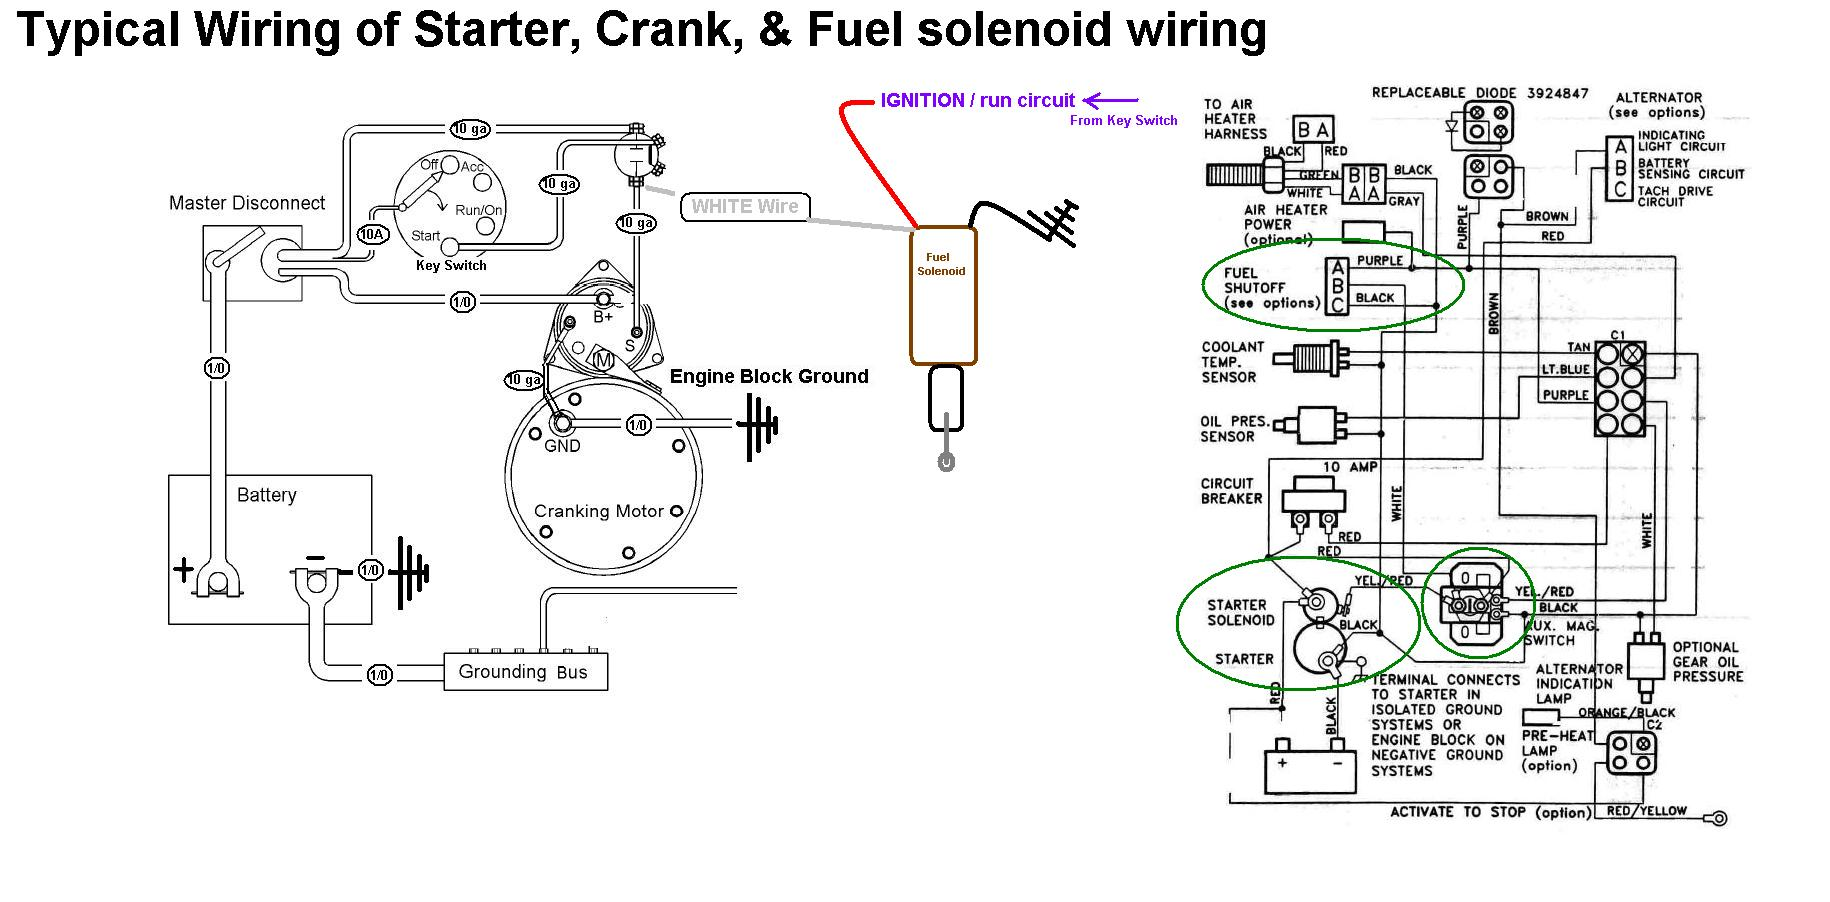 hight resolution of starter crank u0026 fuel shutoff solenoid wiring seaboard marinestarter crank u0026 fuel